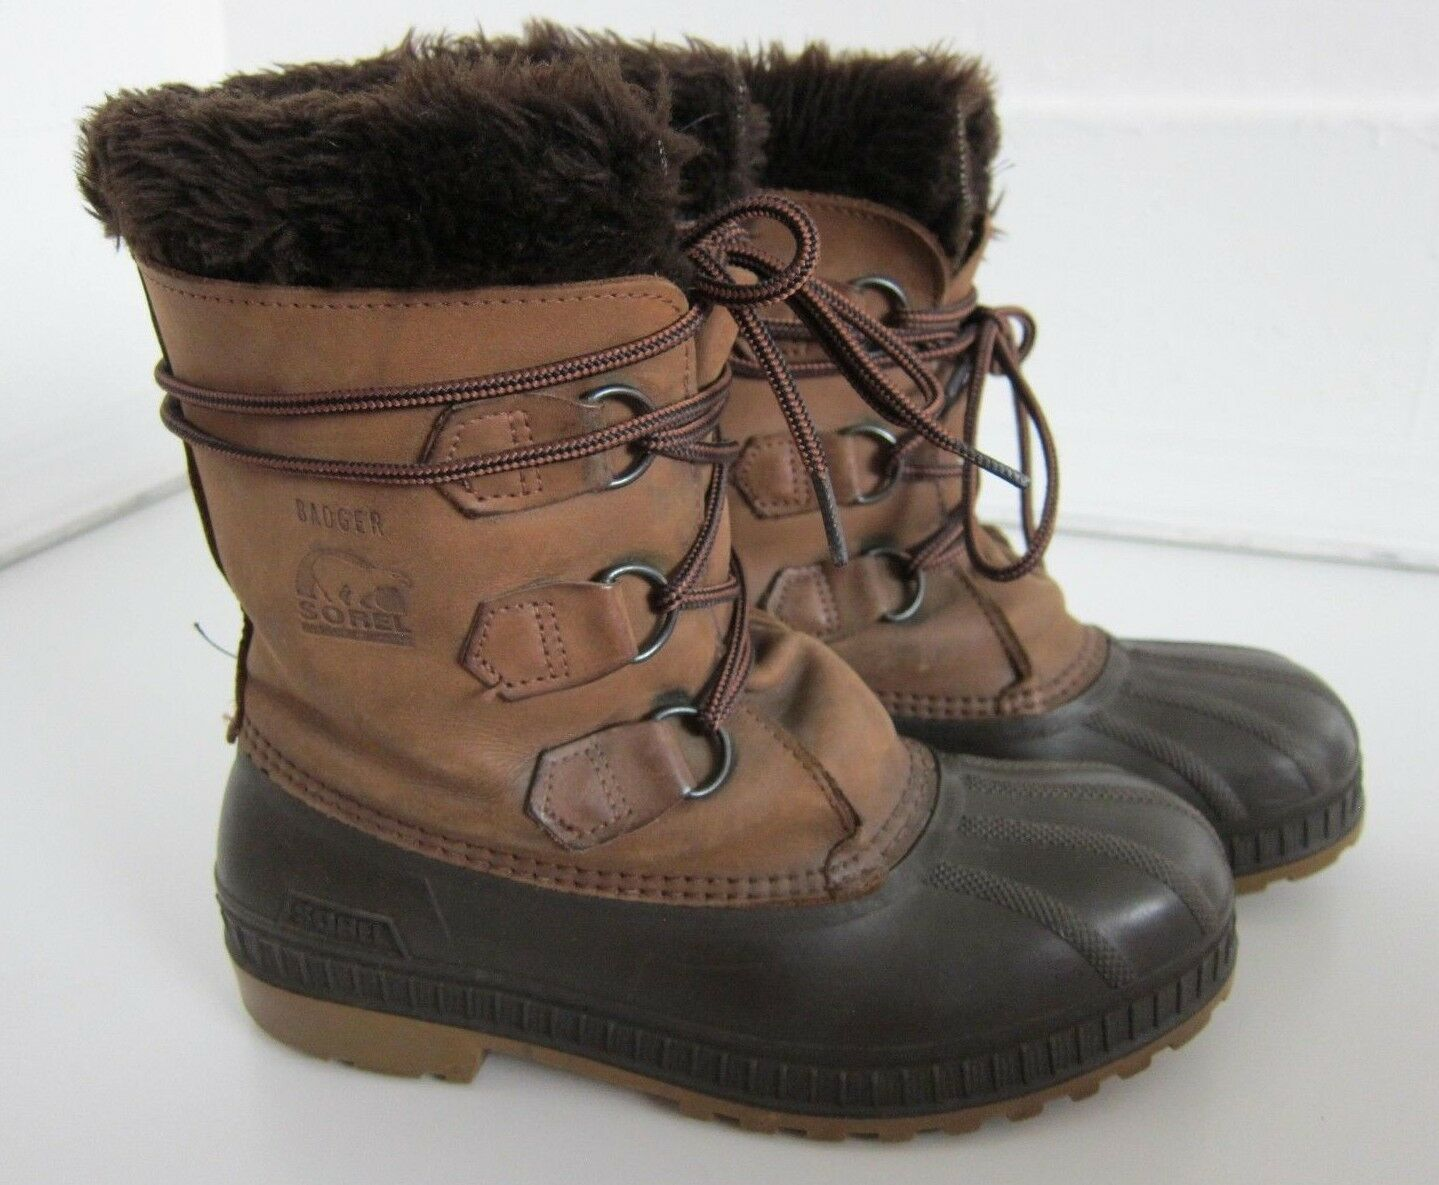 Vintage Sorel Badger Made In Canada Brown Leather Rubber Winter Snow Boot Size 8